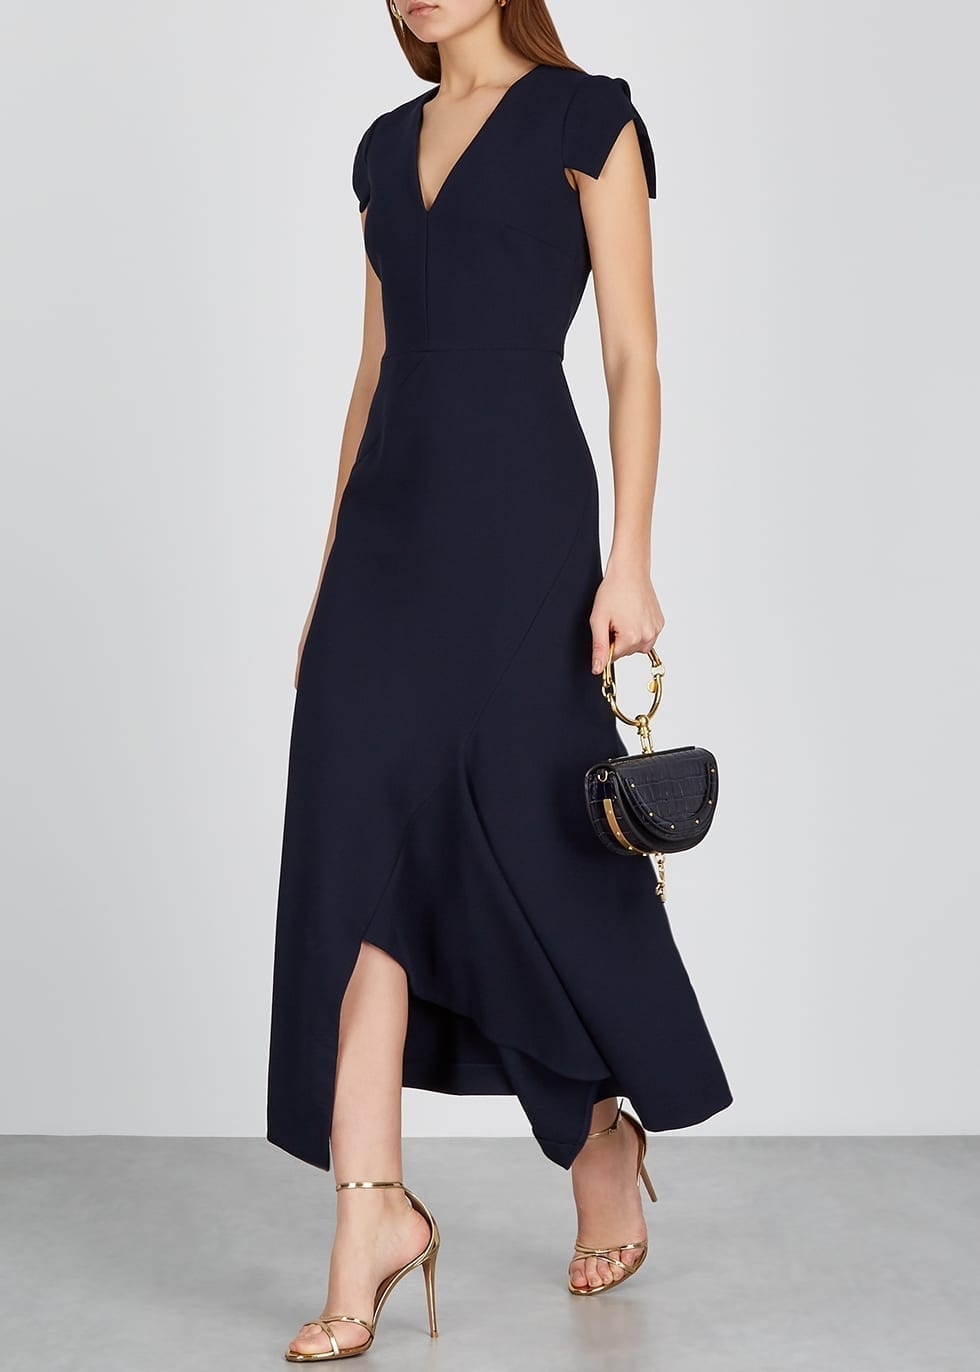 ROLAND MOURET Kinglake Navy Midi Dress